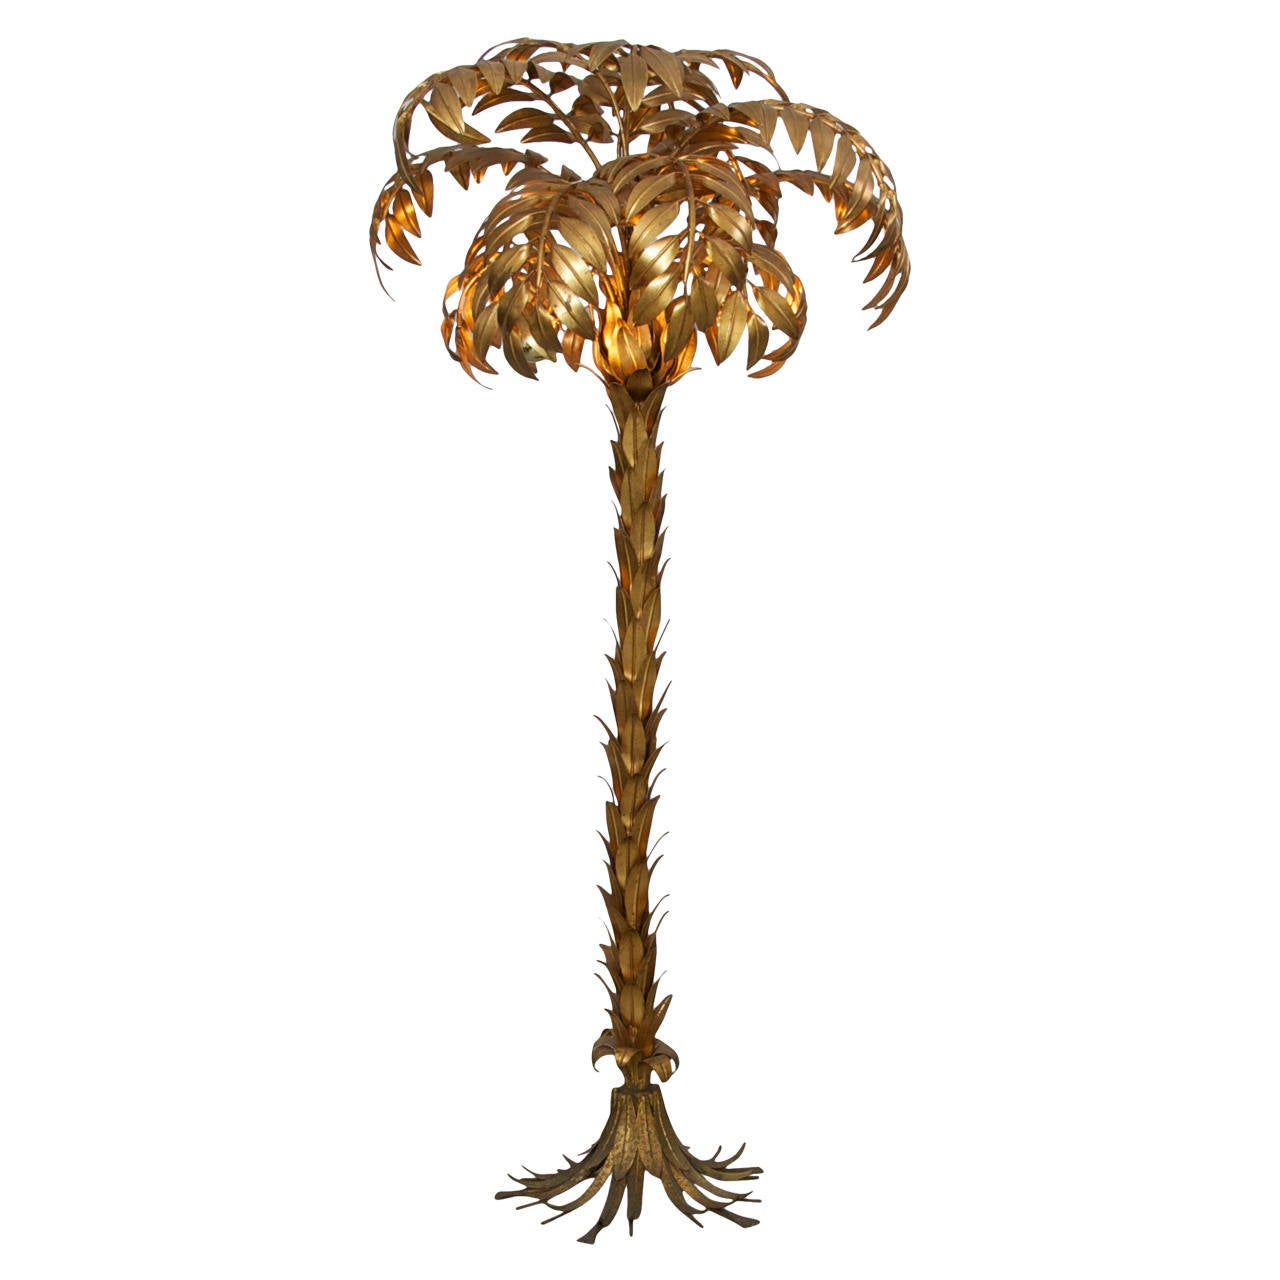 Huge gilt metal palm tree floor lamp by hans kgl at 1stdibs huge gilt metal palm tree floor lamp by hans kgl for sale aloadofball Choice Image